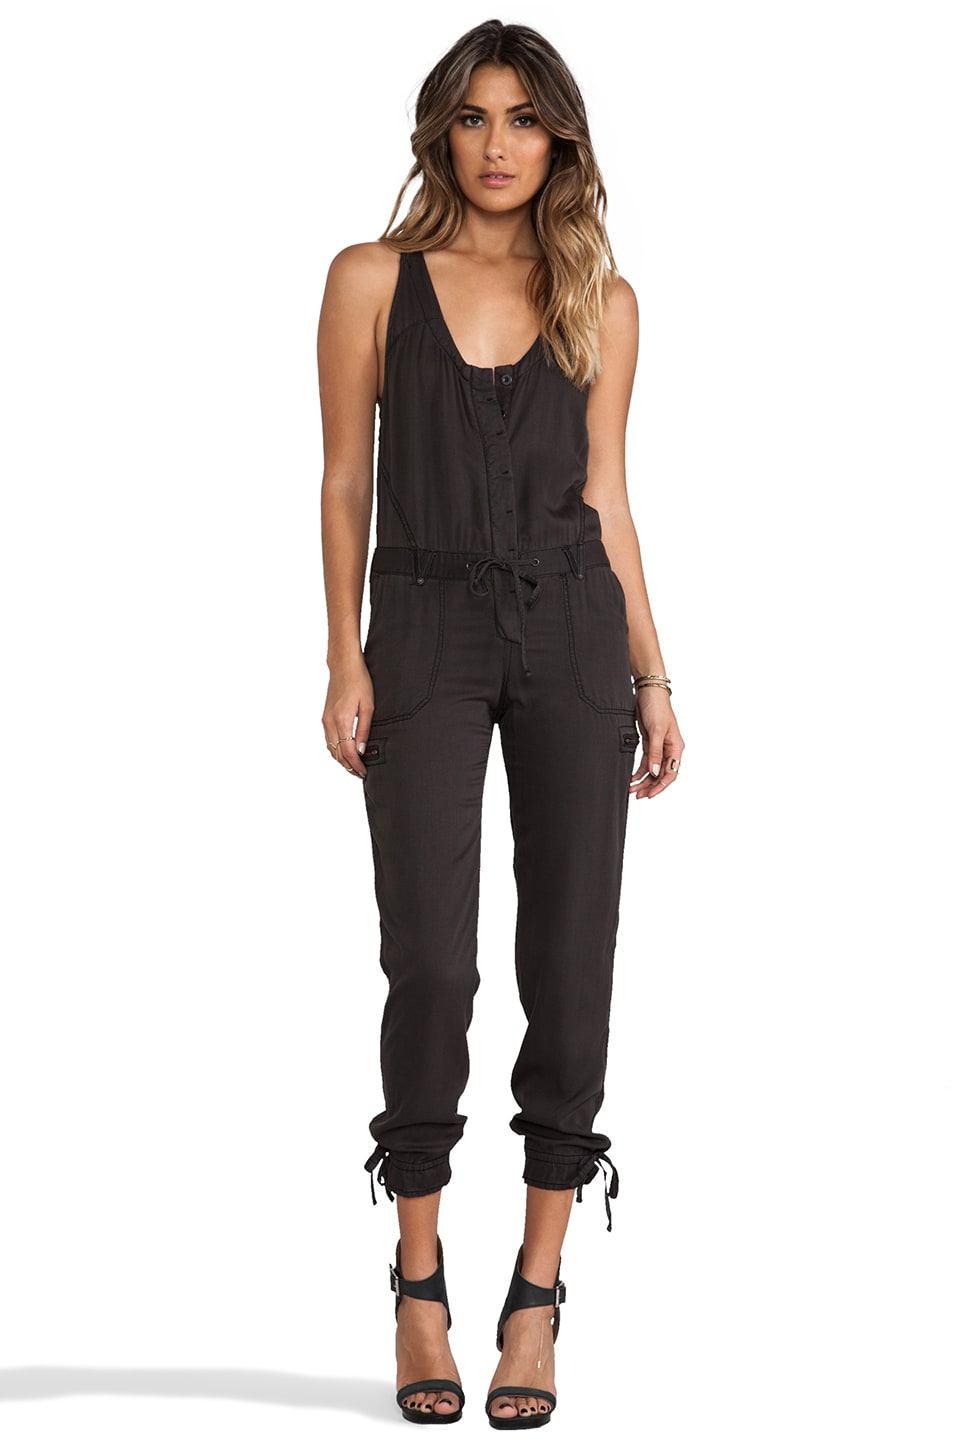 Free People Utilitarian Jumpsuit in Washed Black